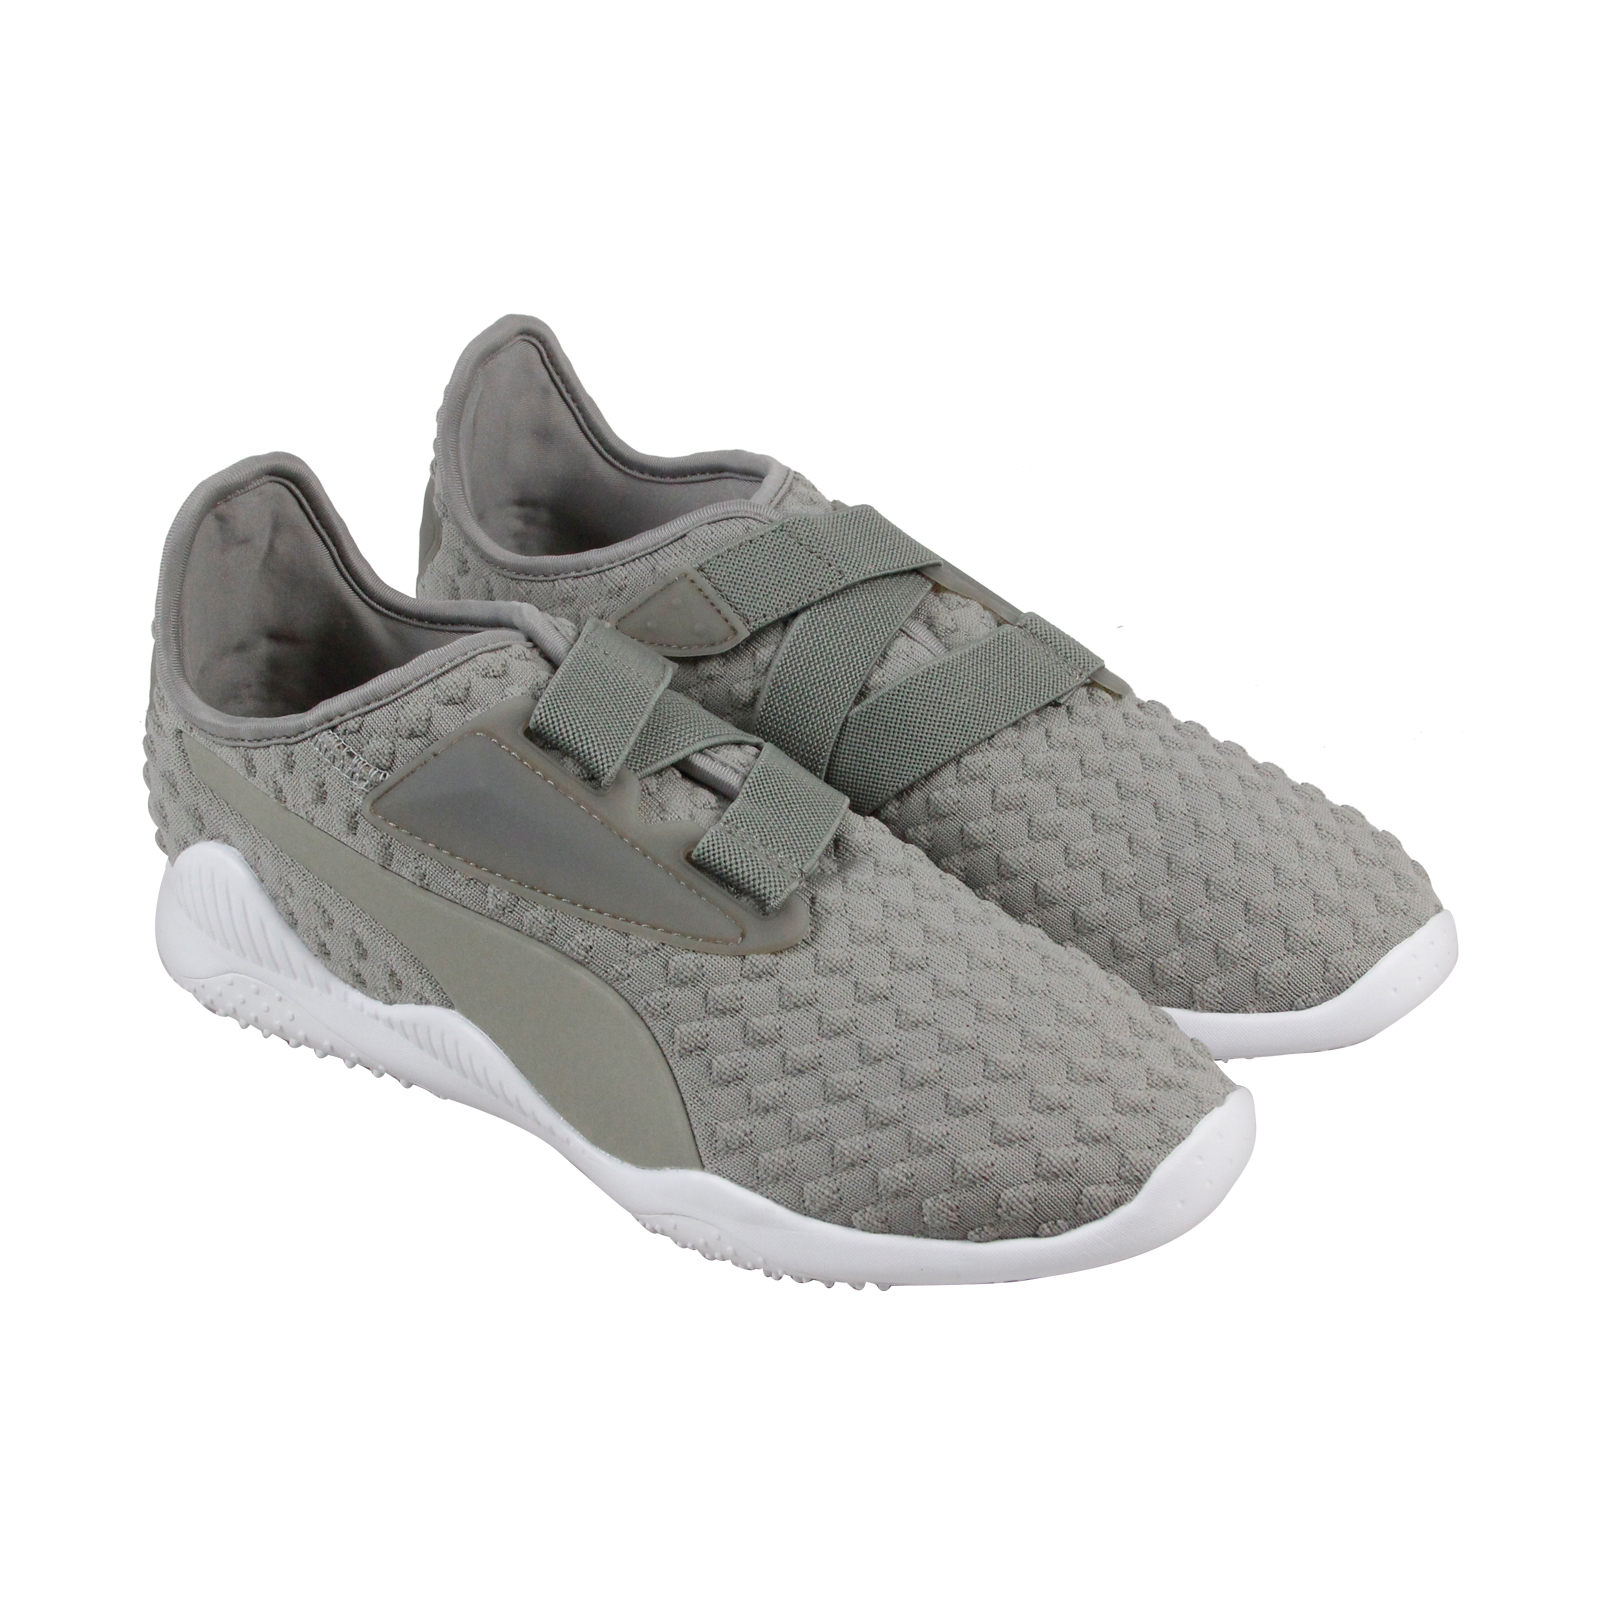 Puma Mostro Bubble Knit Mens Gray Textile Strap Sneakers Shoes 11